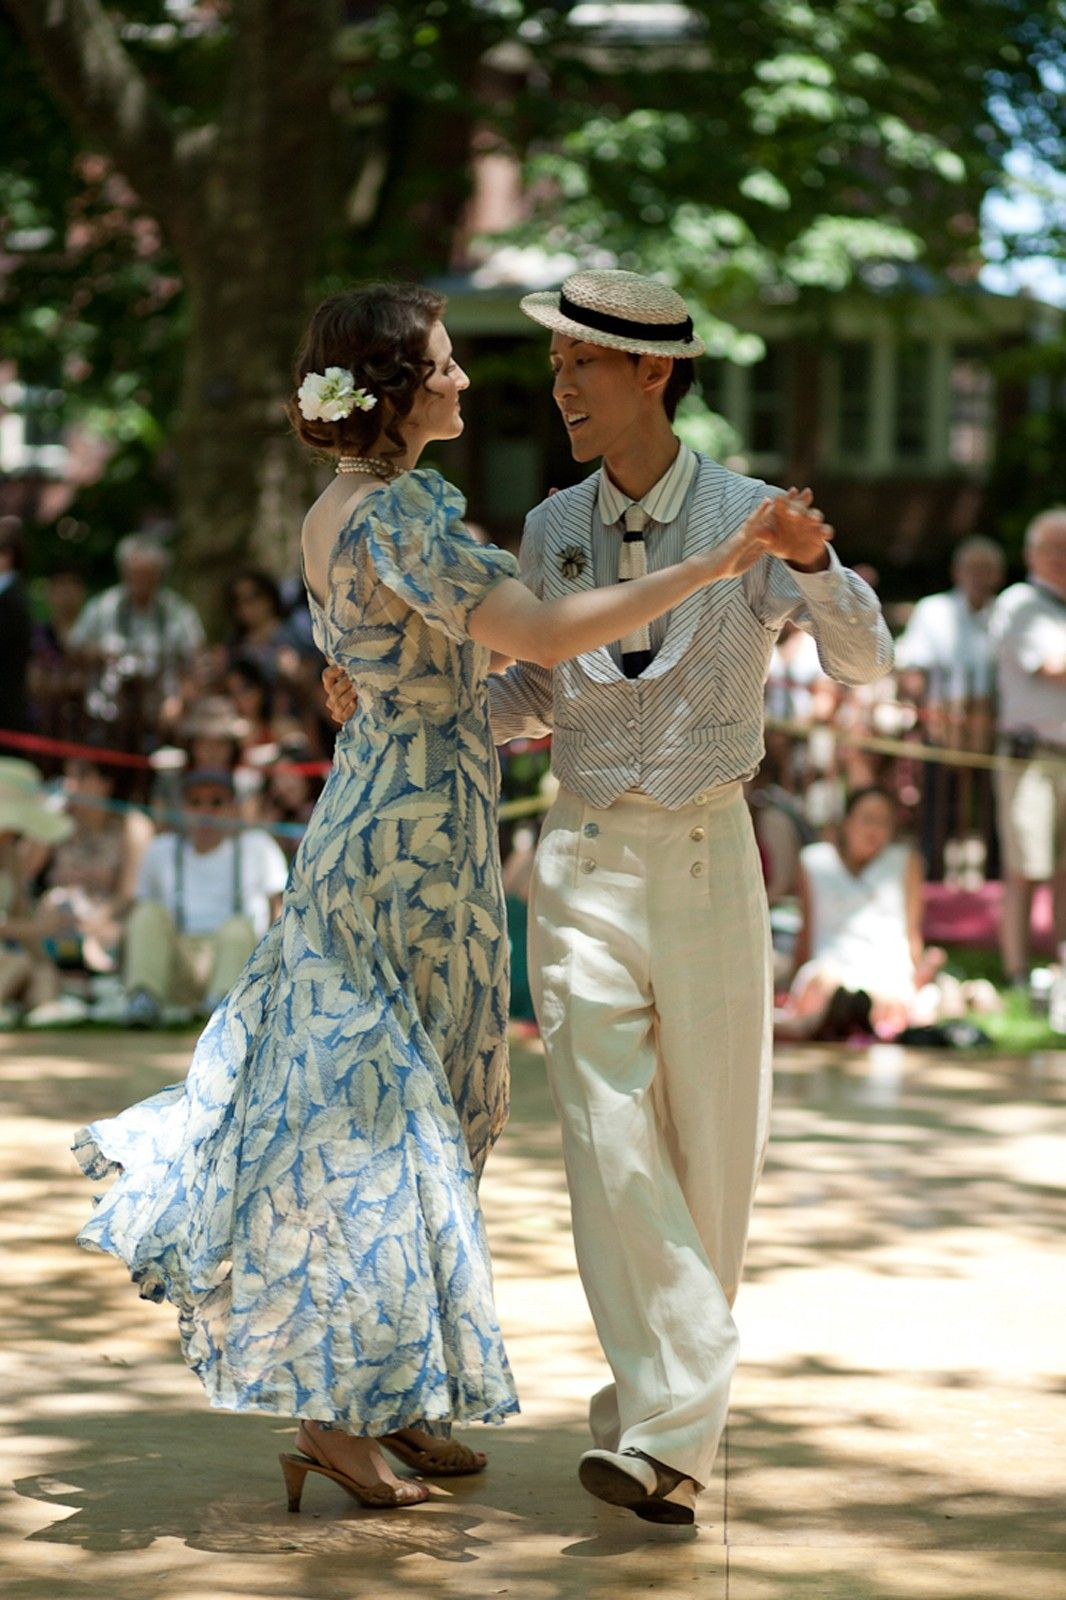 Governor's Island Events Jazz Age Lawn Party NYC in 2020